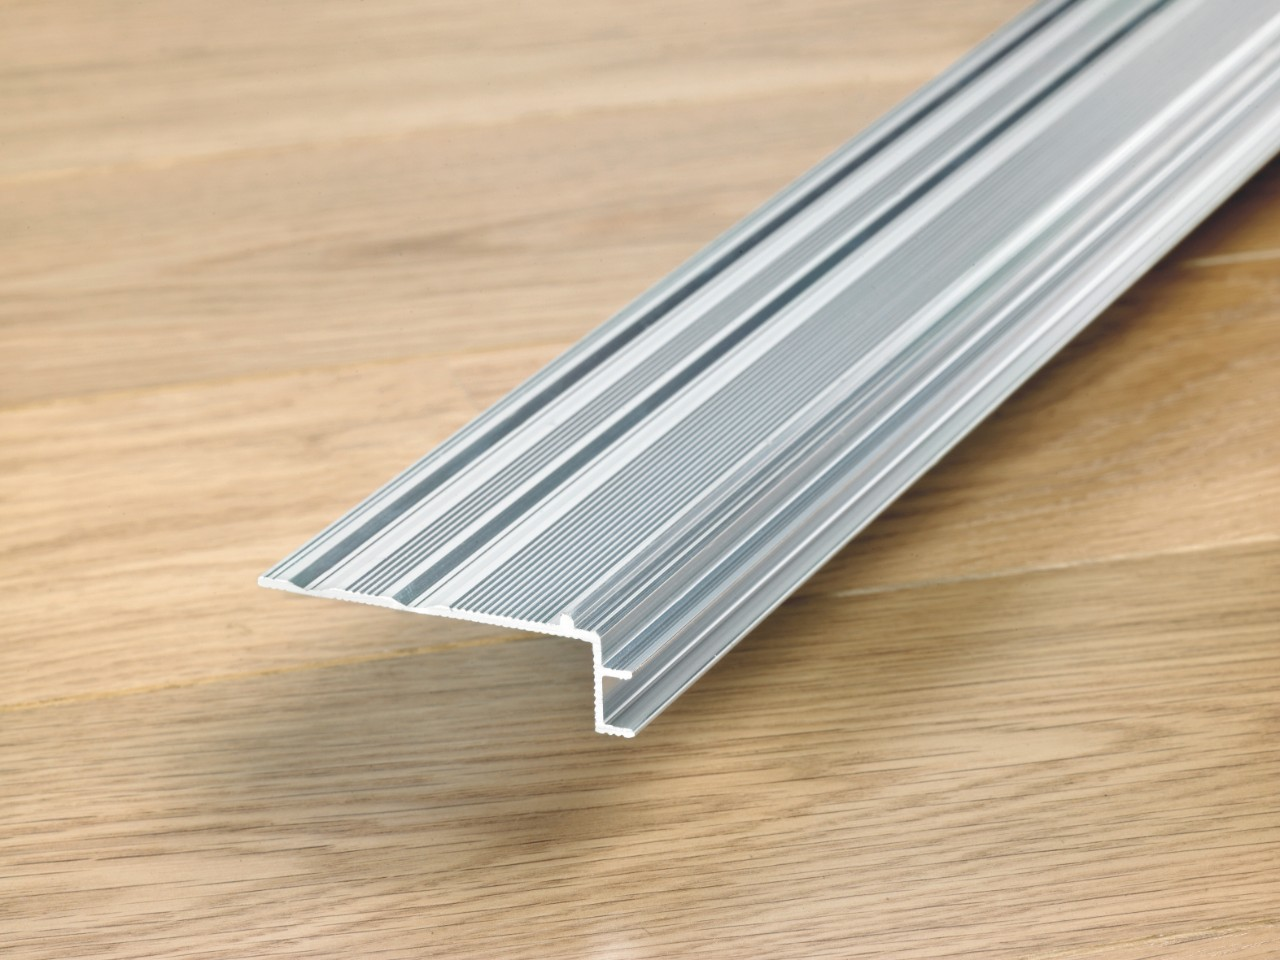 NEINCPBASE Laminate Accessories Incizo Aluminium Subprofile For Stairs NEINCPBASE8